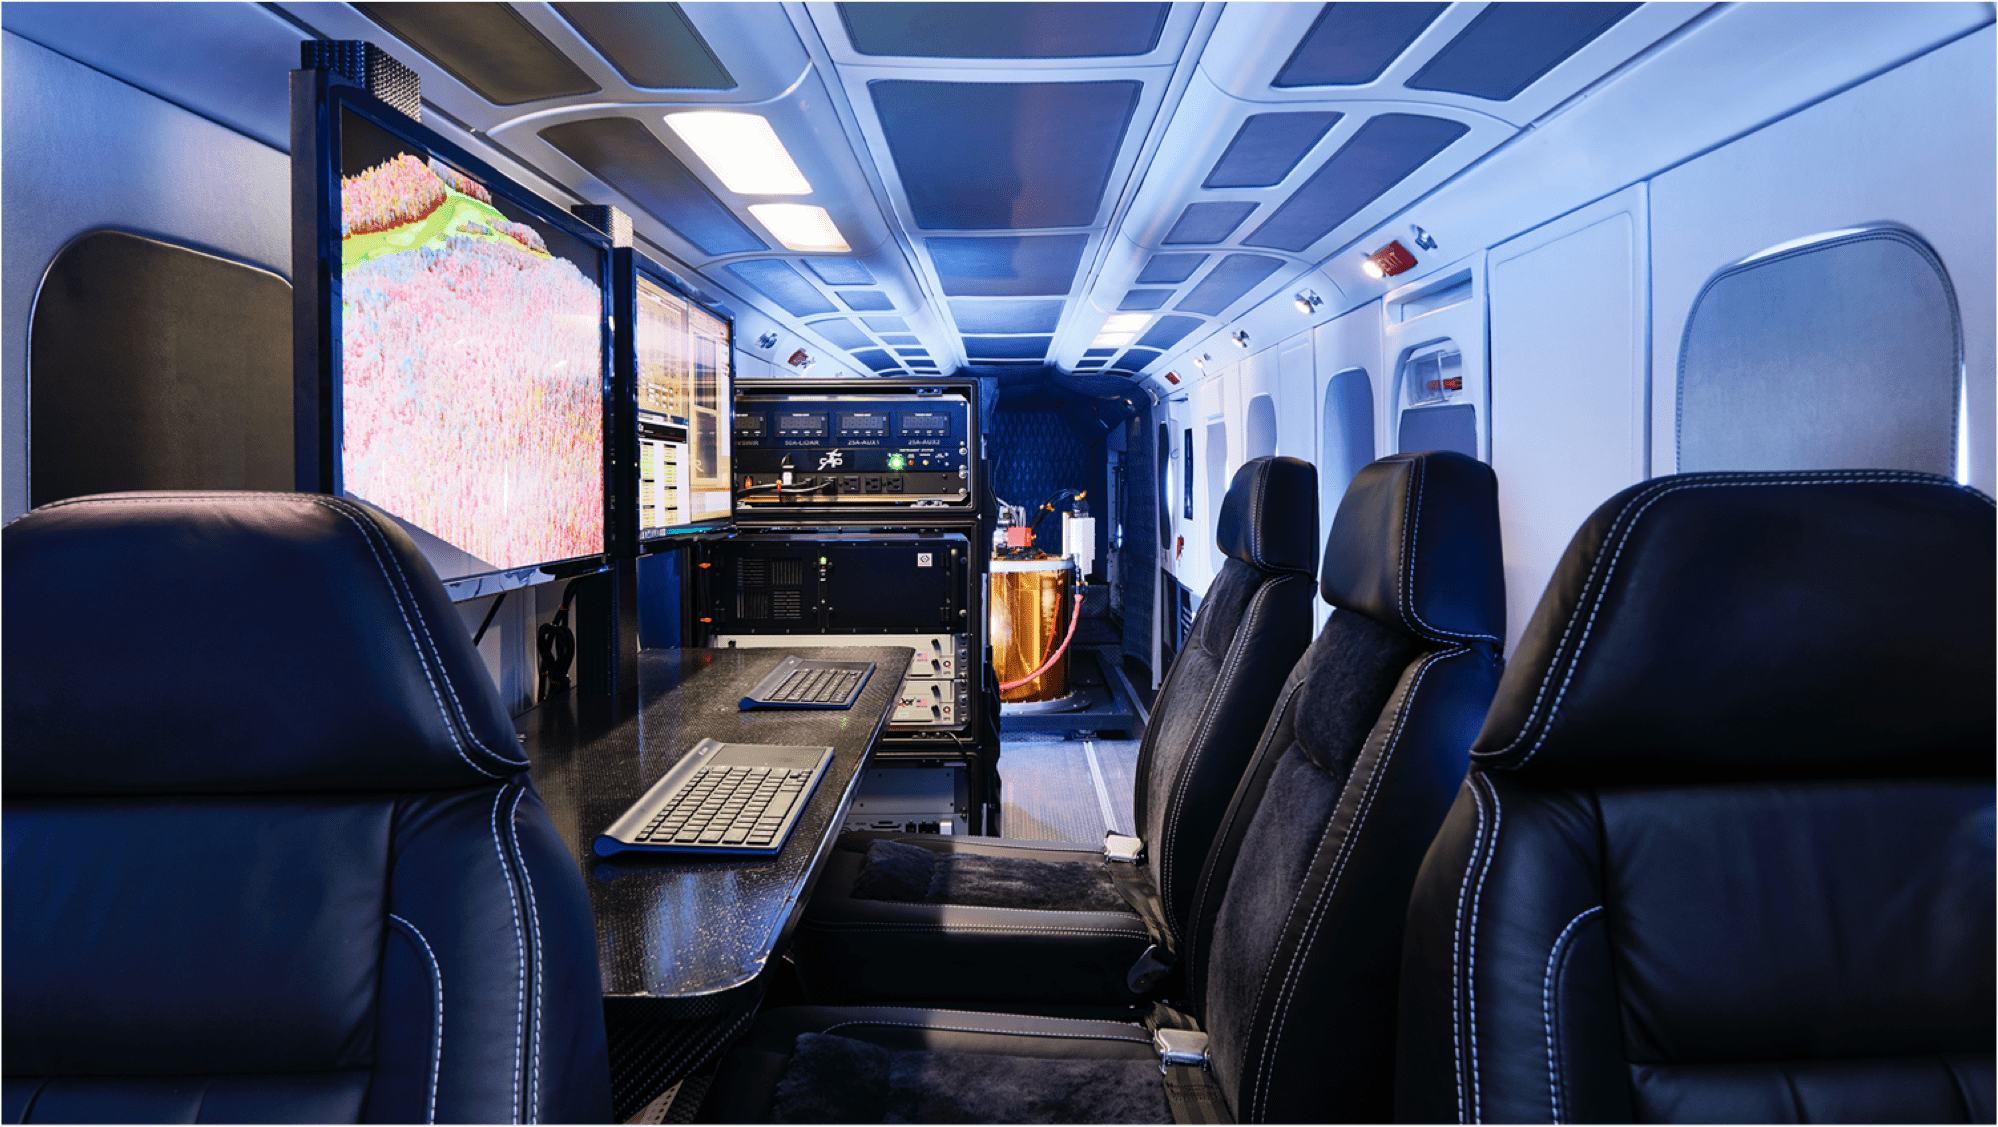 inside of plane with big computer screen and equipment